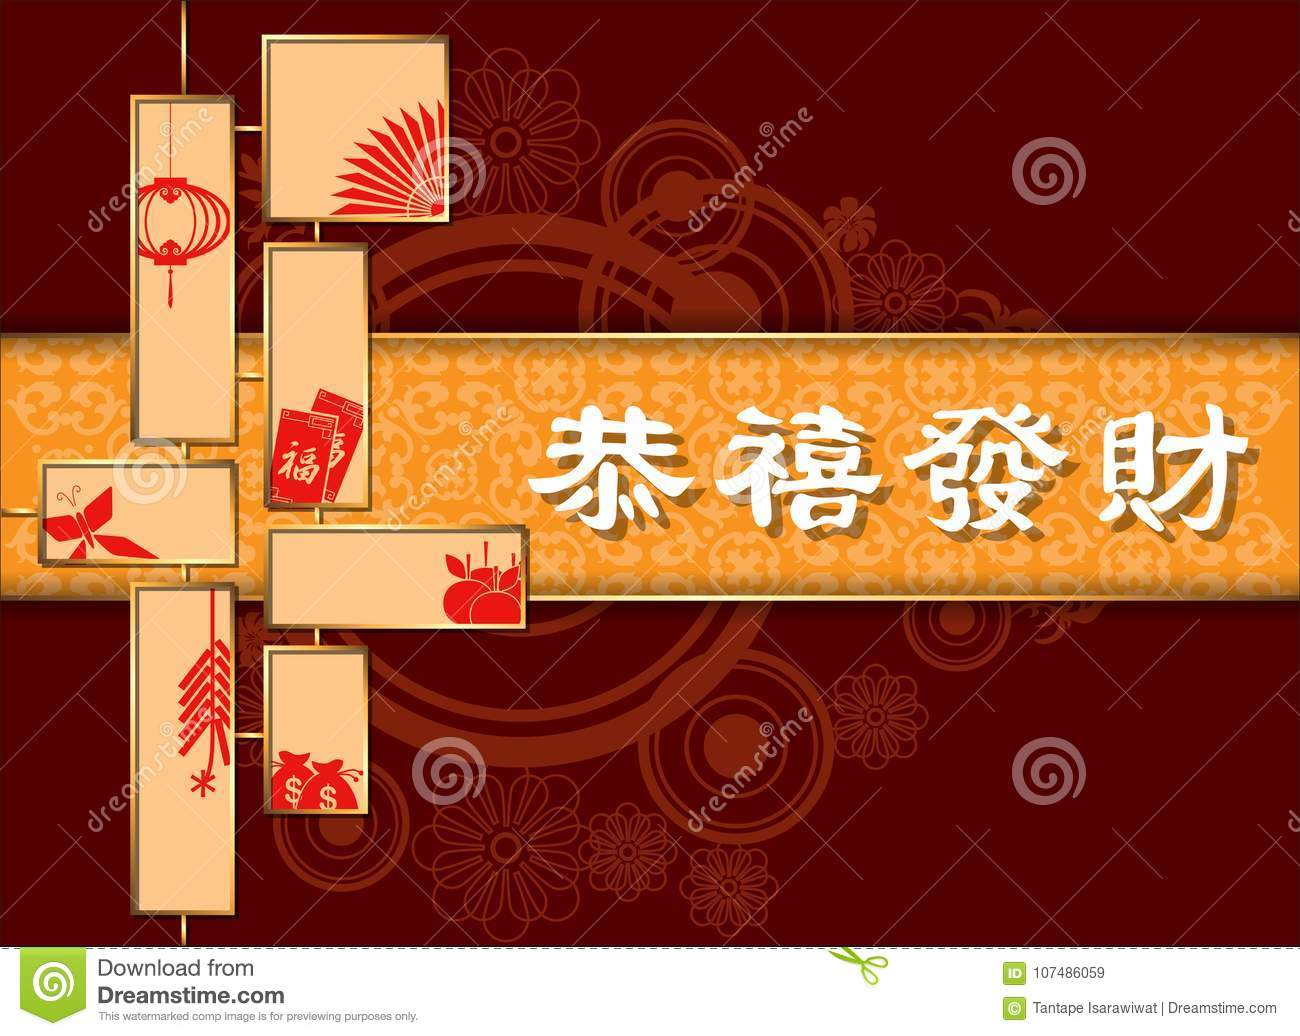 Abstract chinese new year. The meaning are Lucky and Happy.